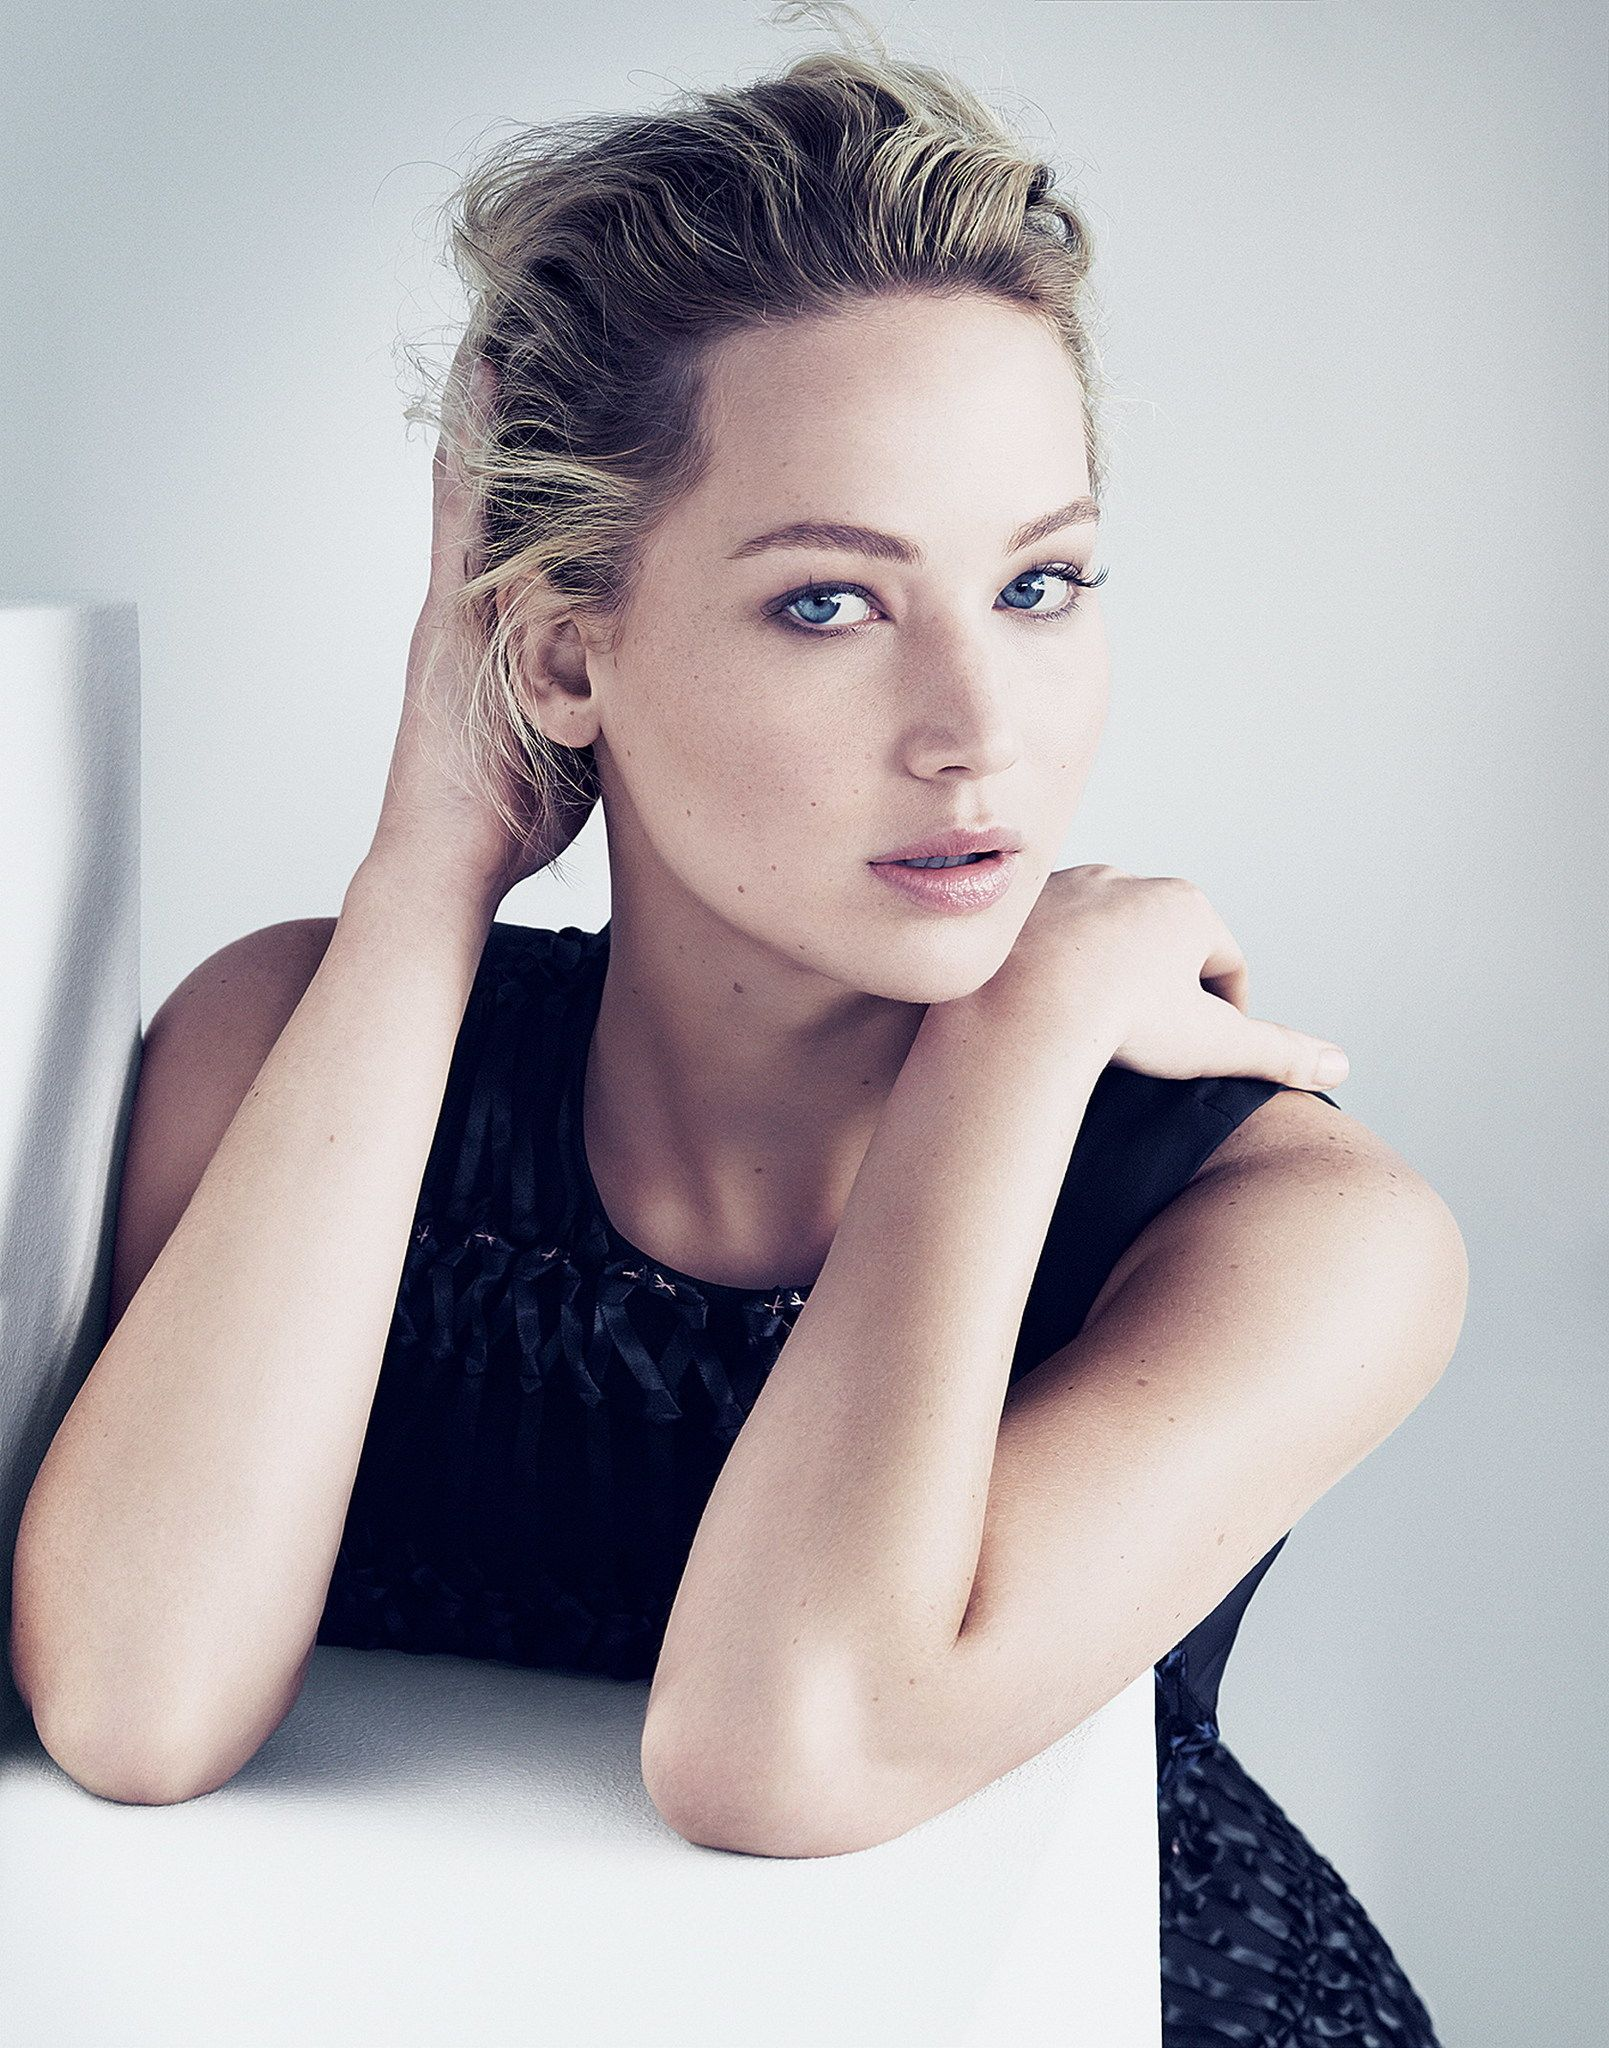 JLaw Tops Forbes' Actress Rich List. Check Out Which Other Ladies Banked Big Bucks.